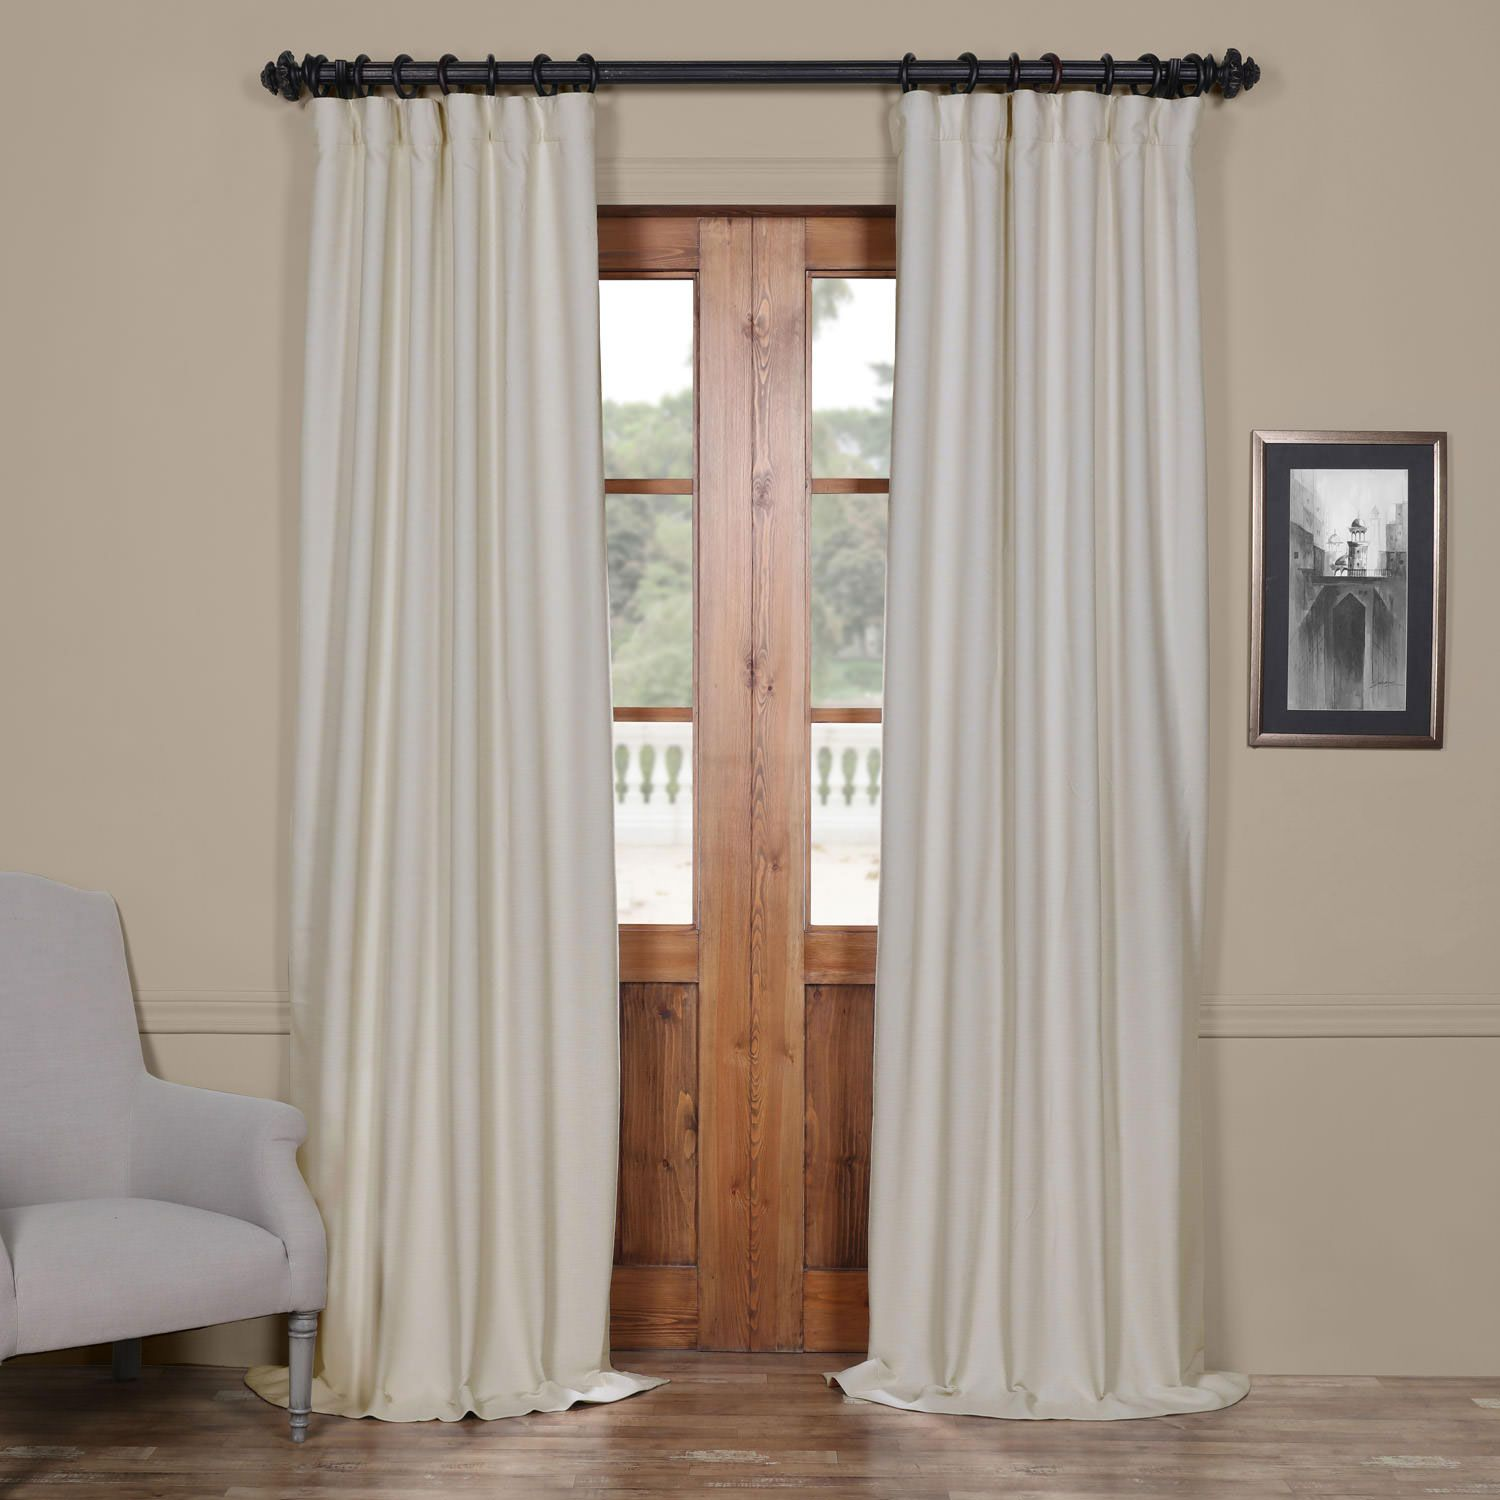 complete your kohls curtain interior grey plus with fashionable sheer in awesome and drapes blackout decor rooms decorating curtains design inch panels table side armchair